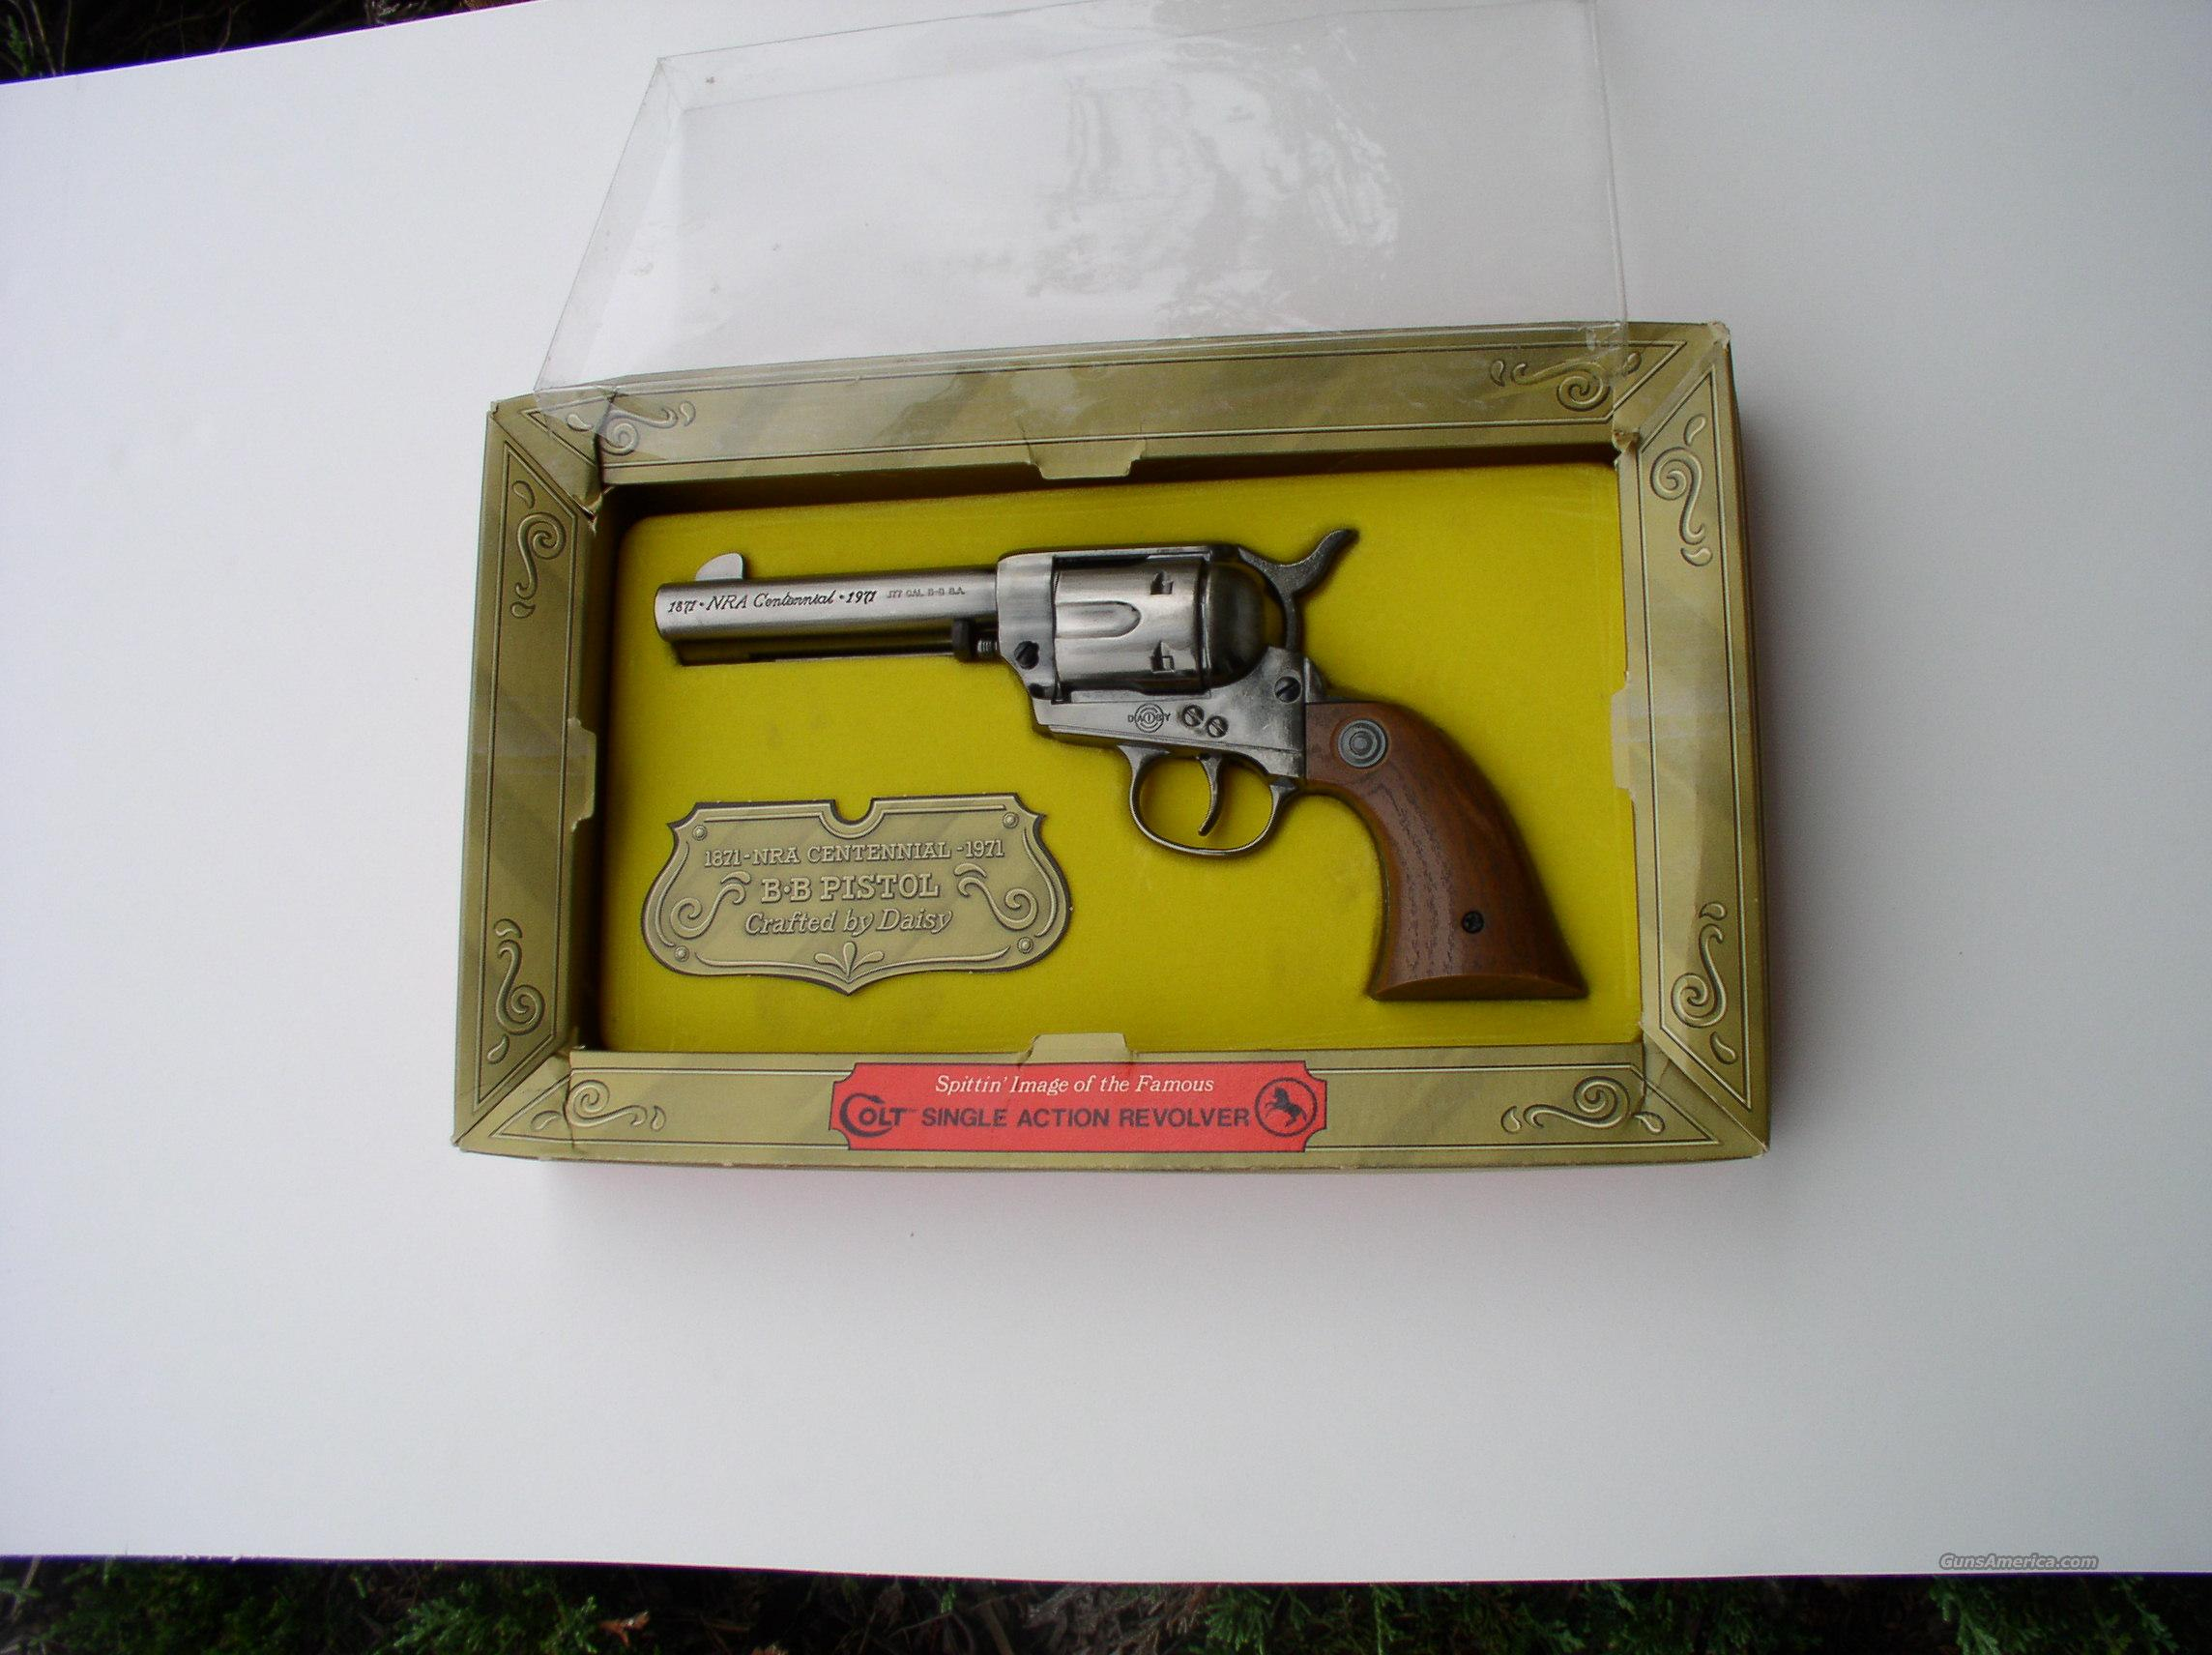 DAISY NRA CENTENNIAL BB PISTOL  Non-Guns > Air Rifles - Pistols > Other